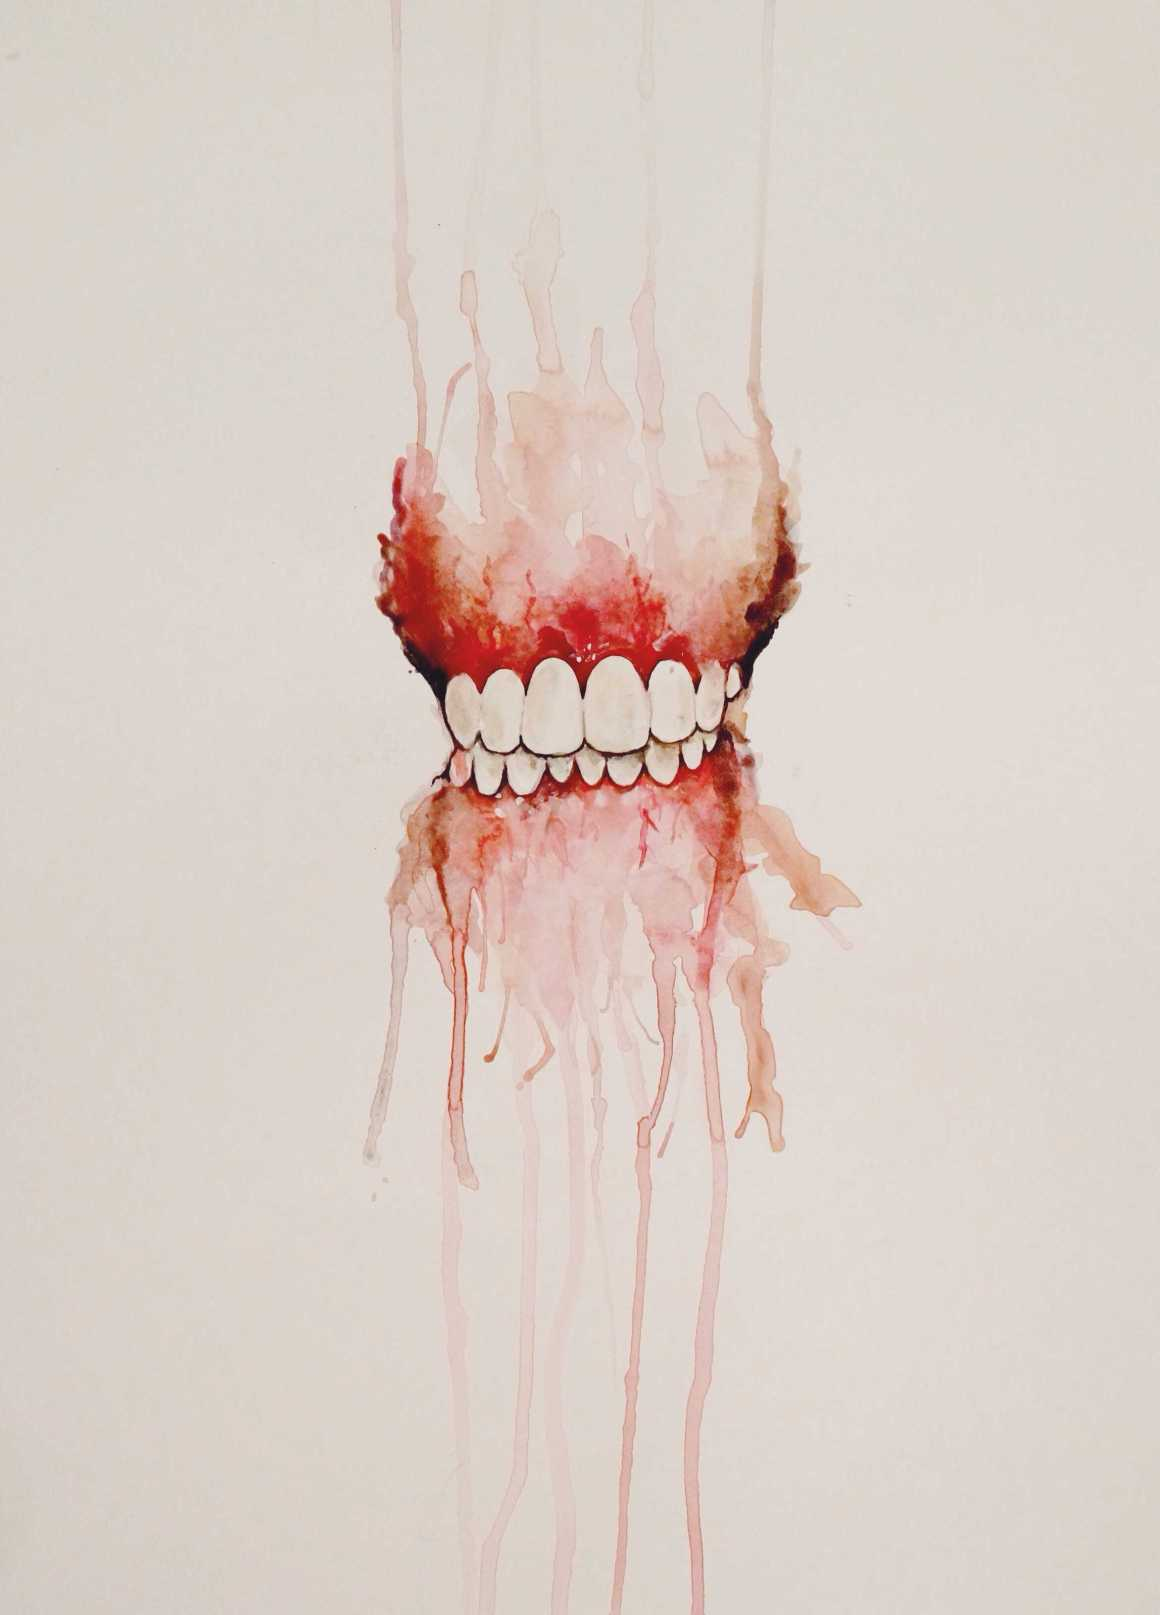 Gums: an illustration